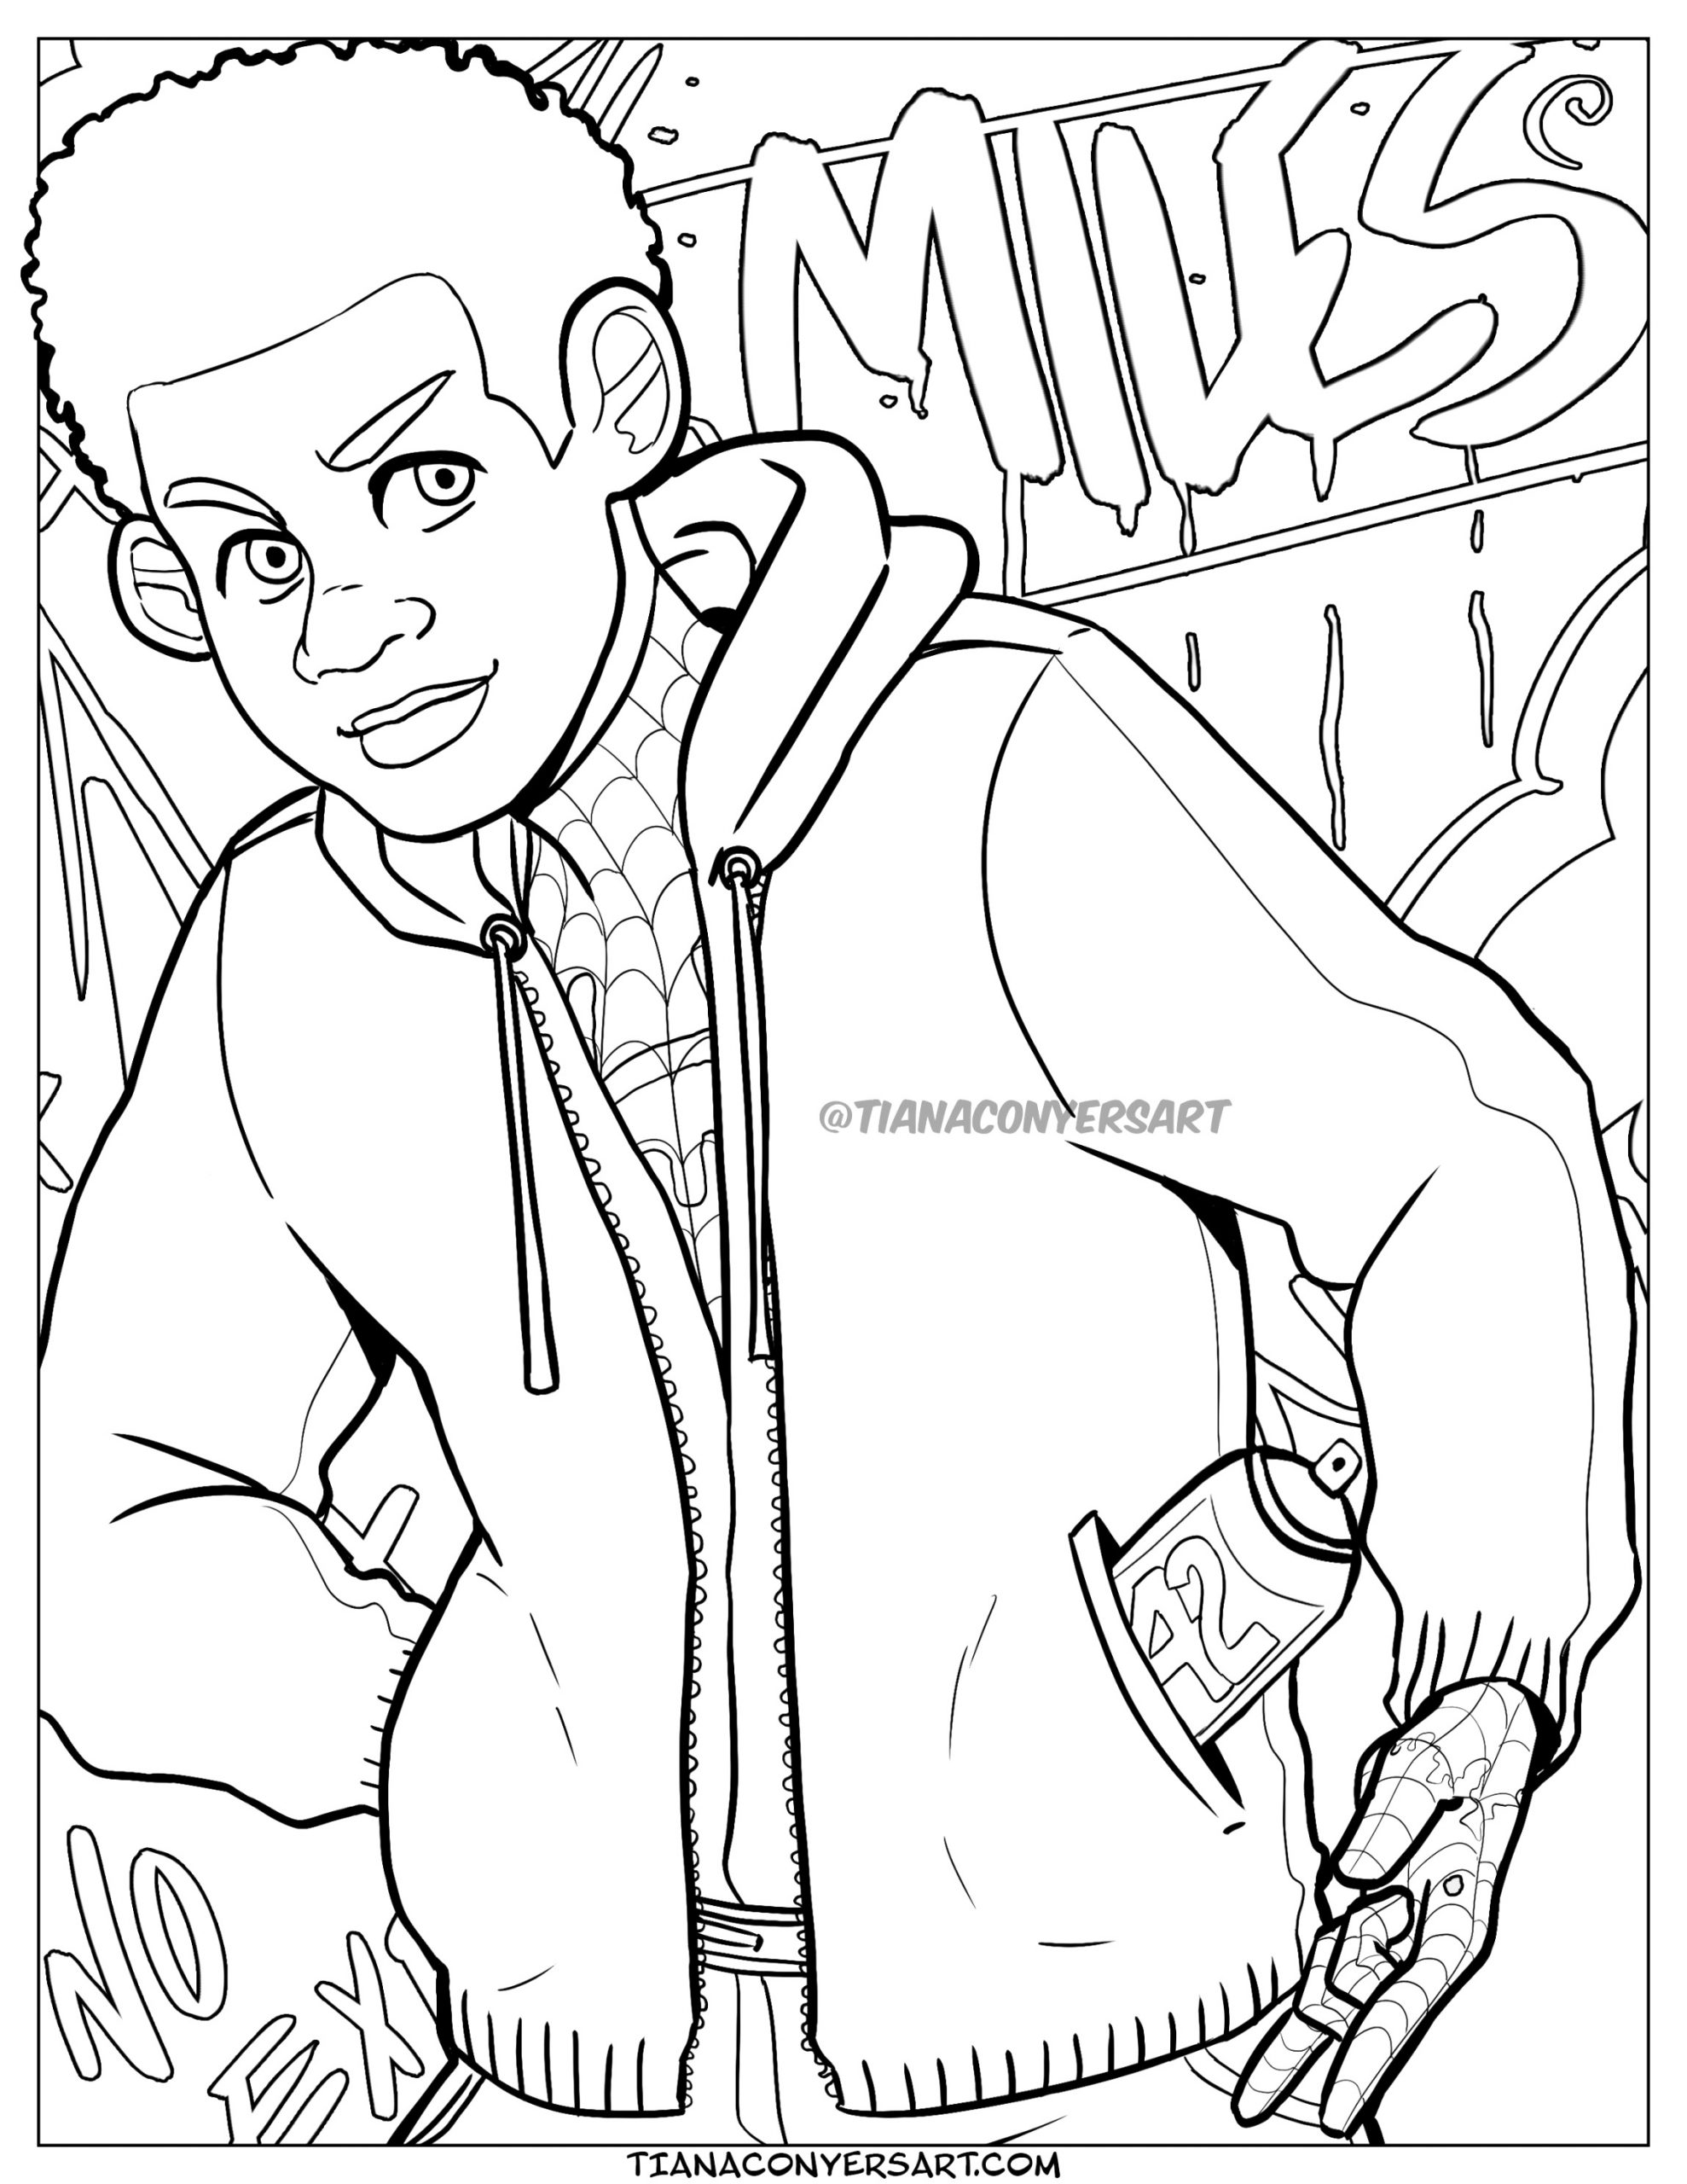 Outstanding coloring book pages pdf download